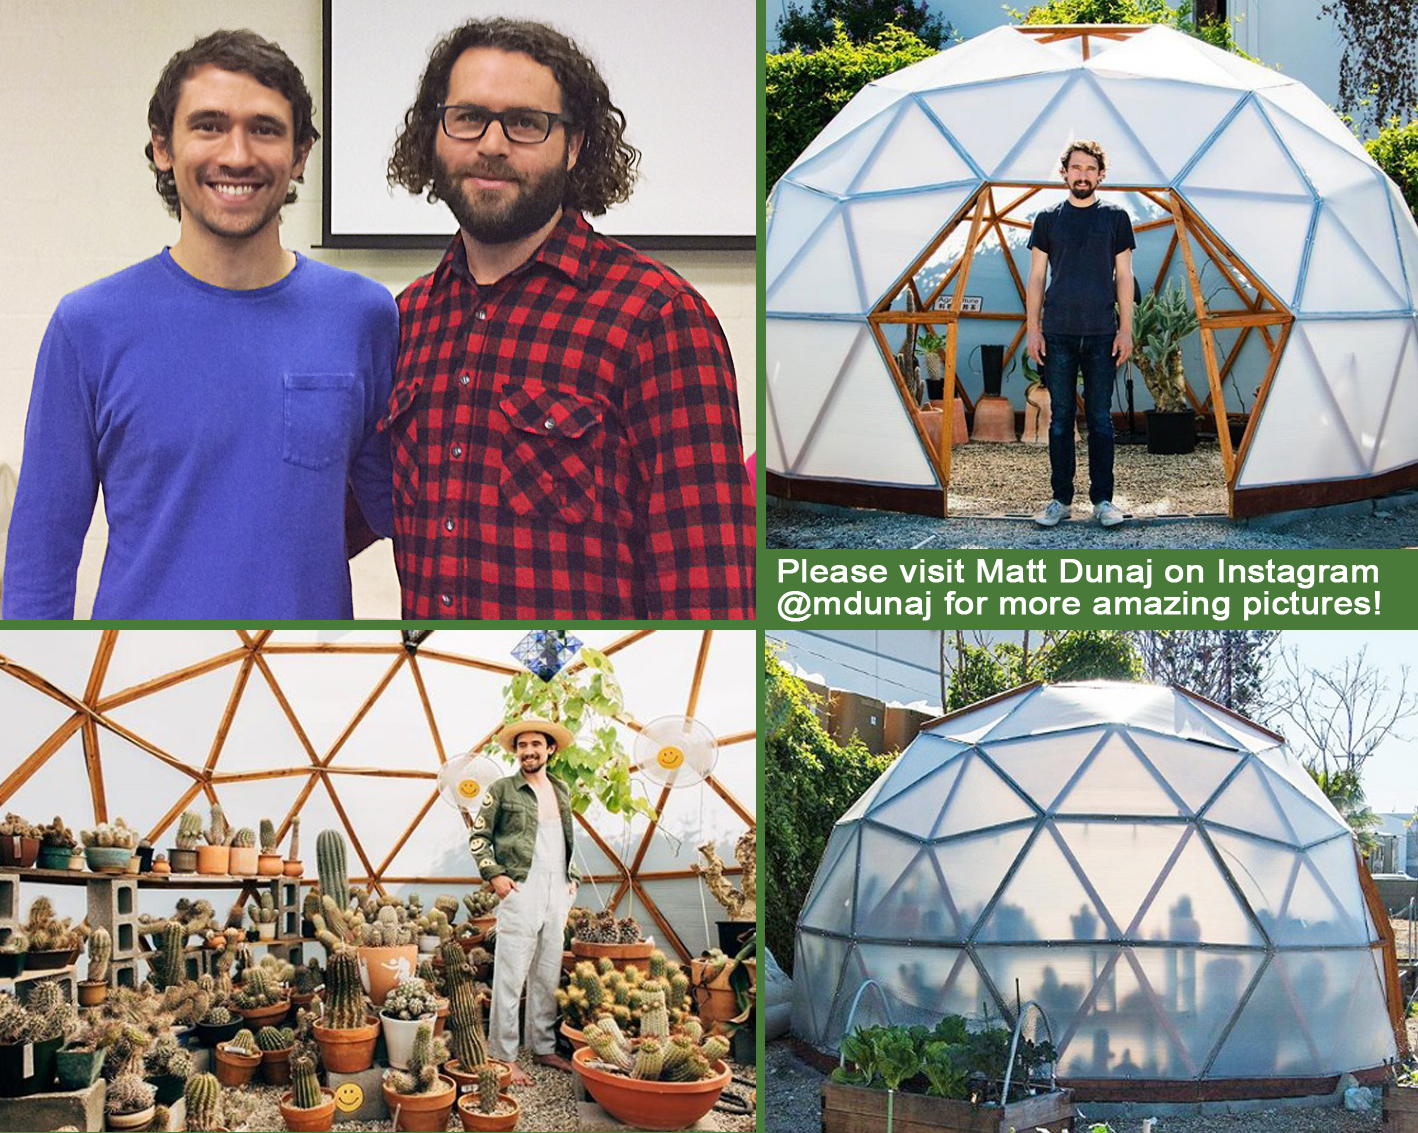 Matt Dunaj - Dome Greenhouse